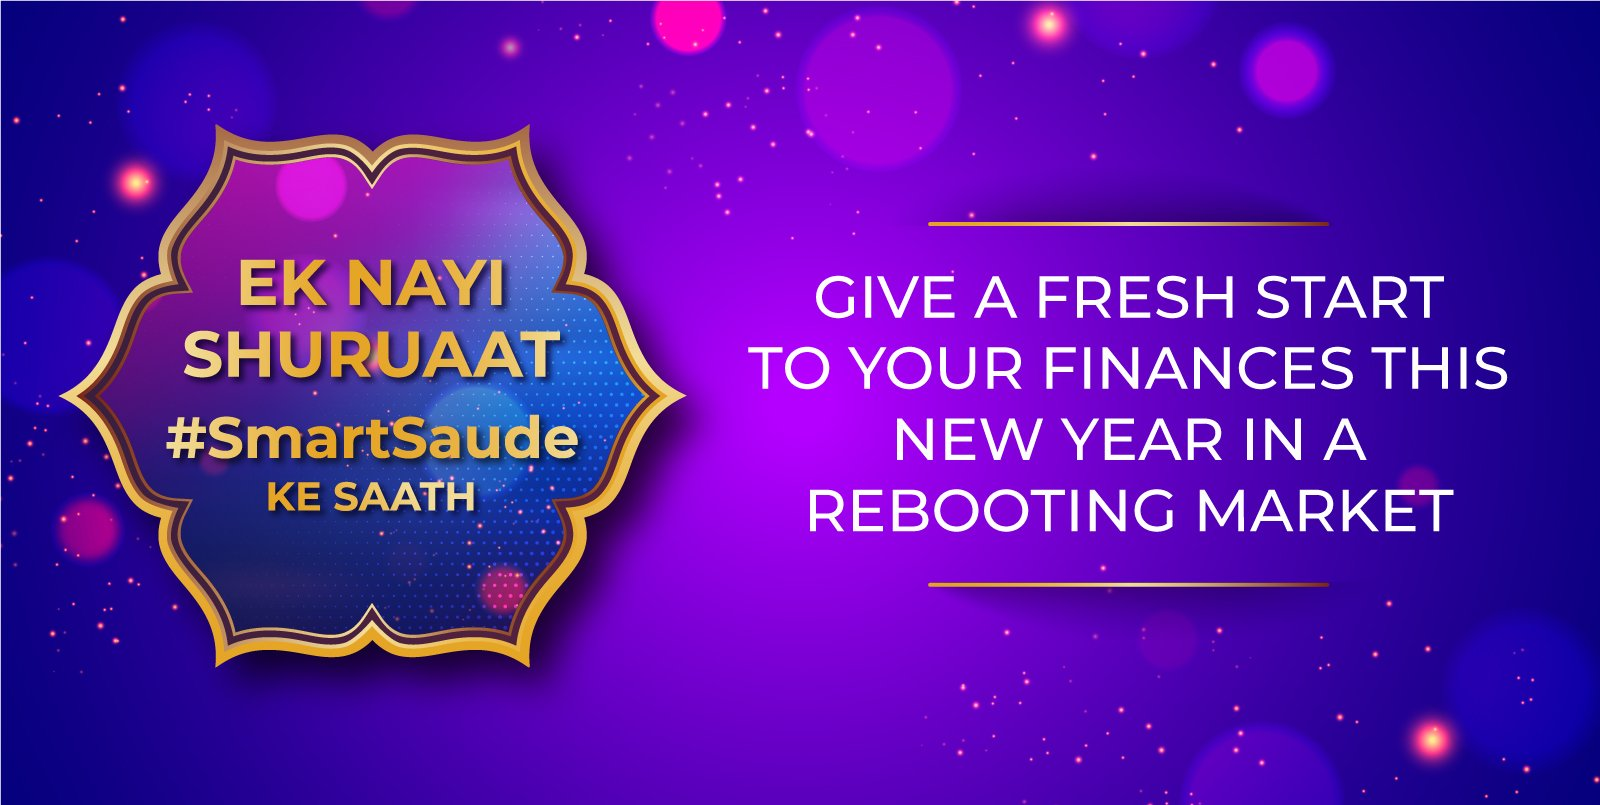 Give a fresh start to your finances this new year in a rebooting market